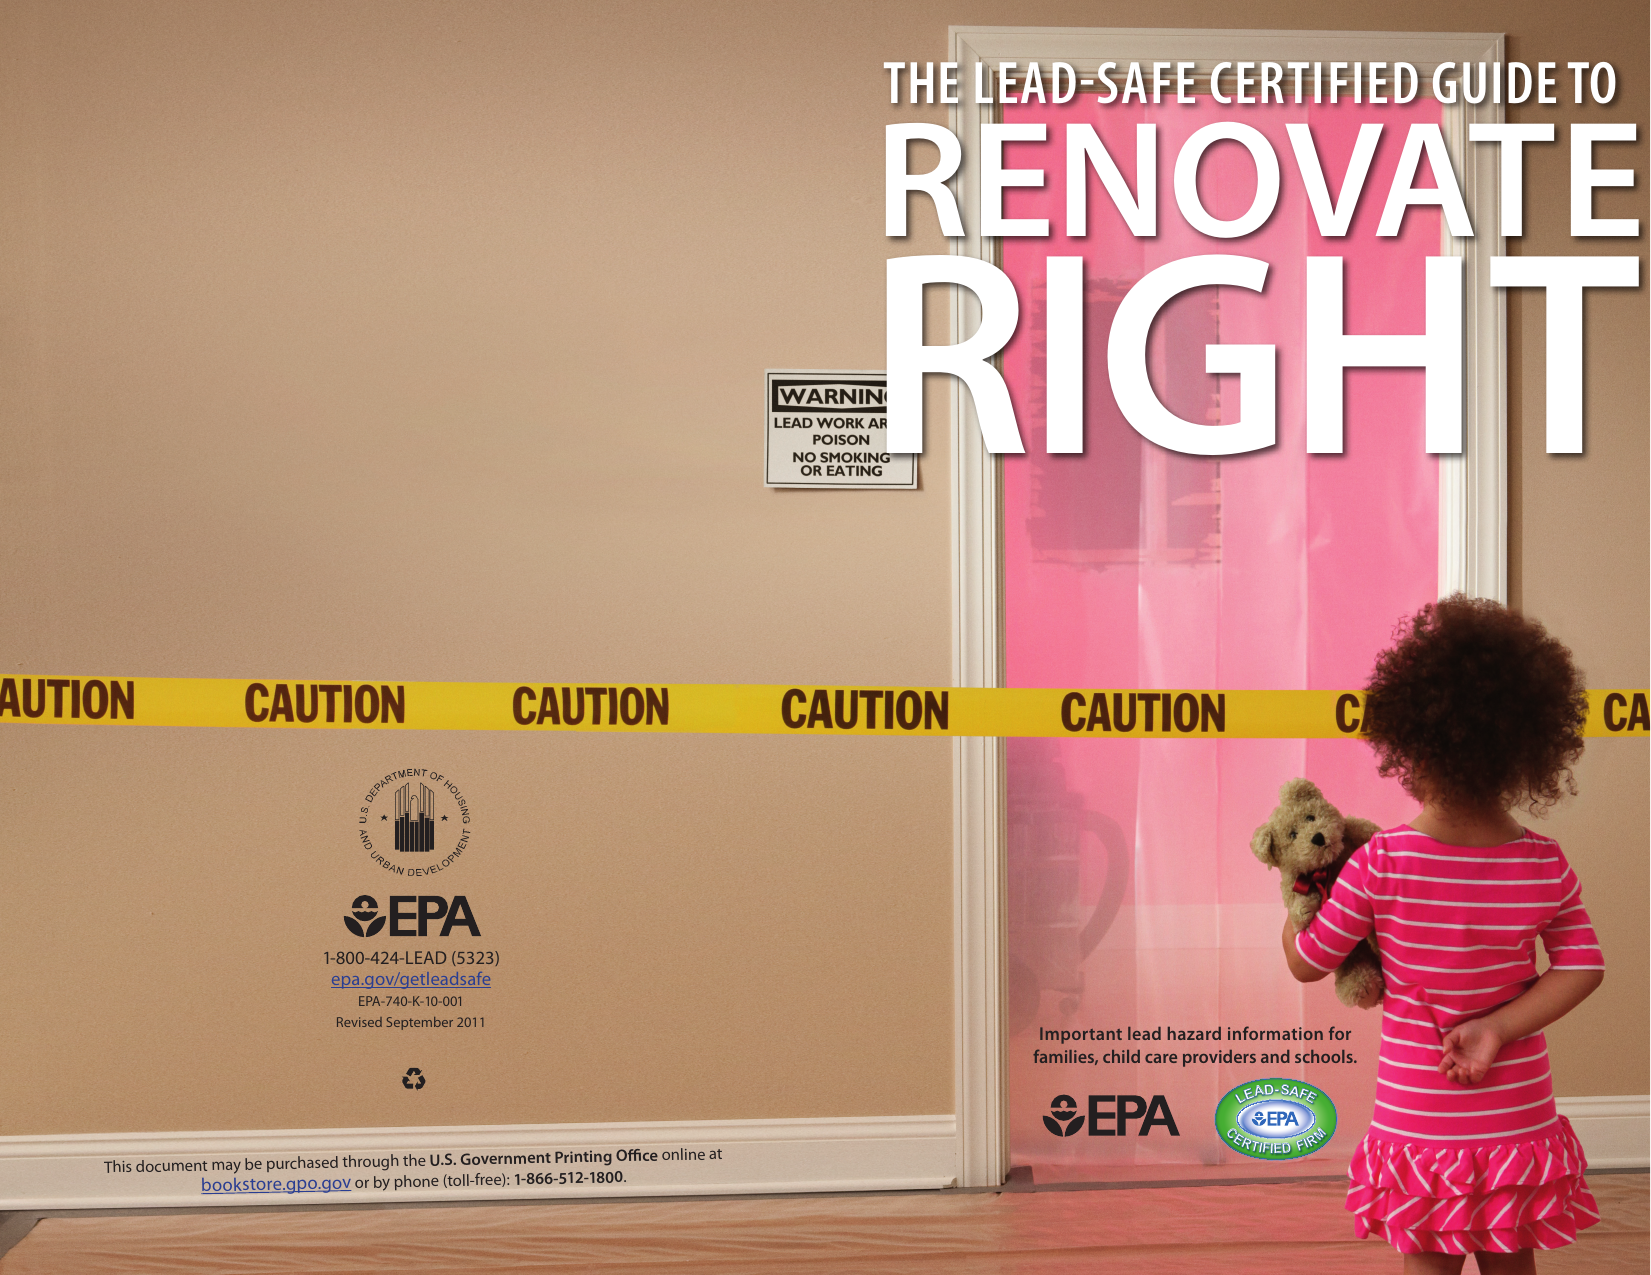 Page 1 of 12 - The Lead-Safe Certified Guide To Renovate Right